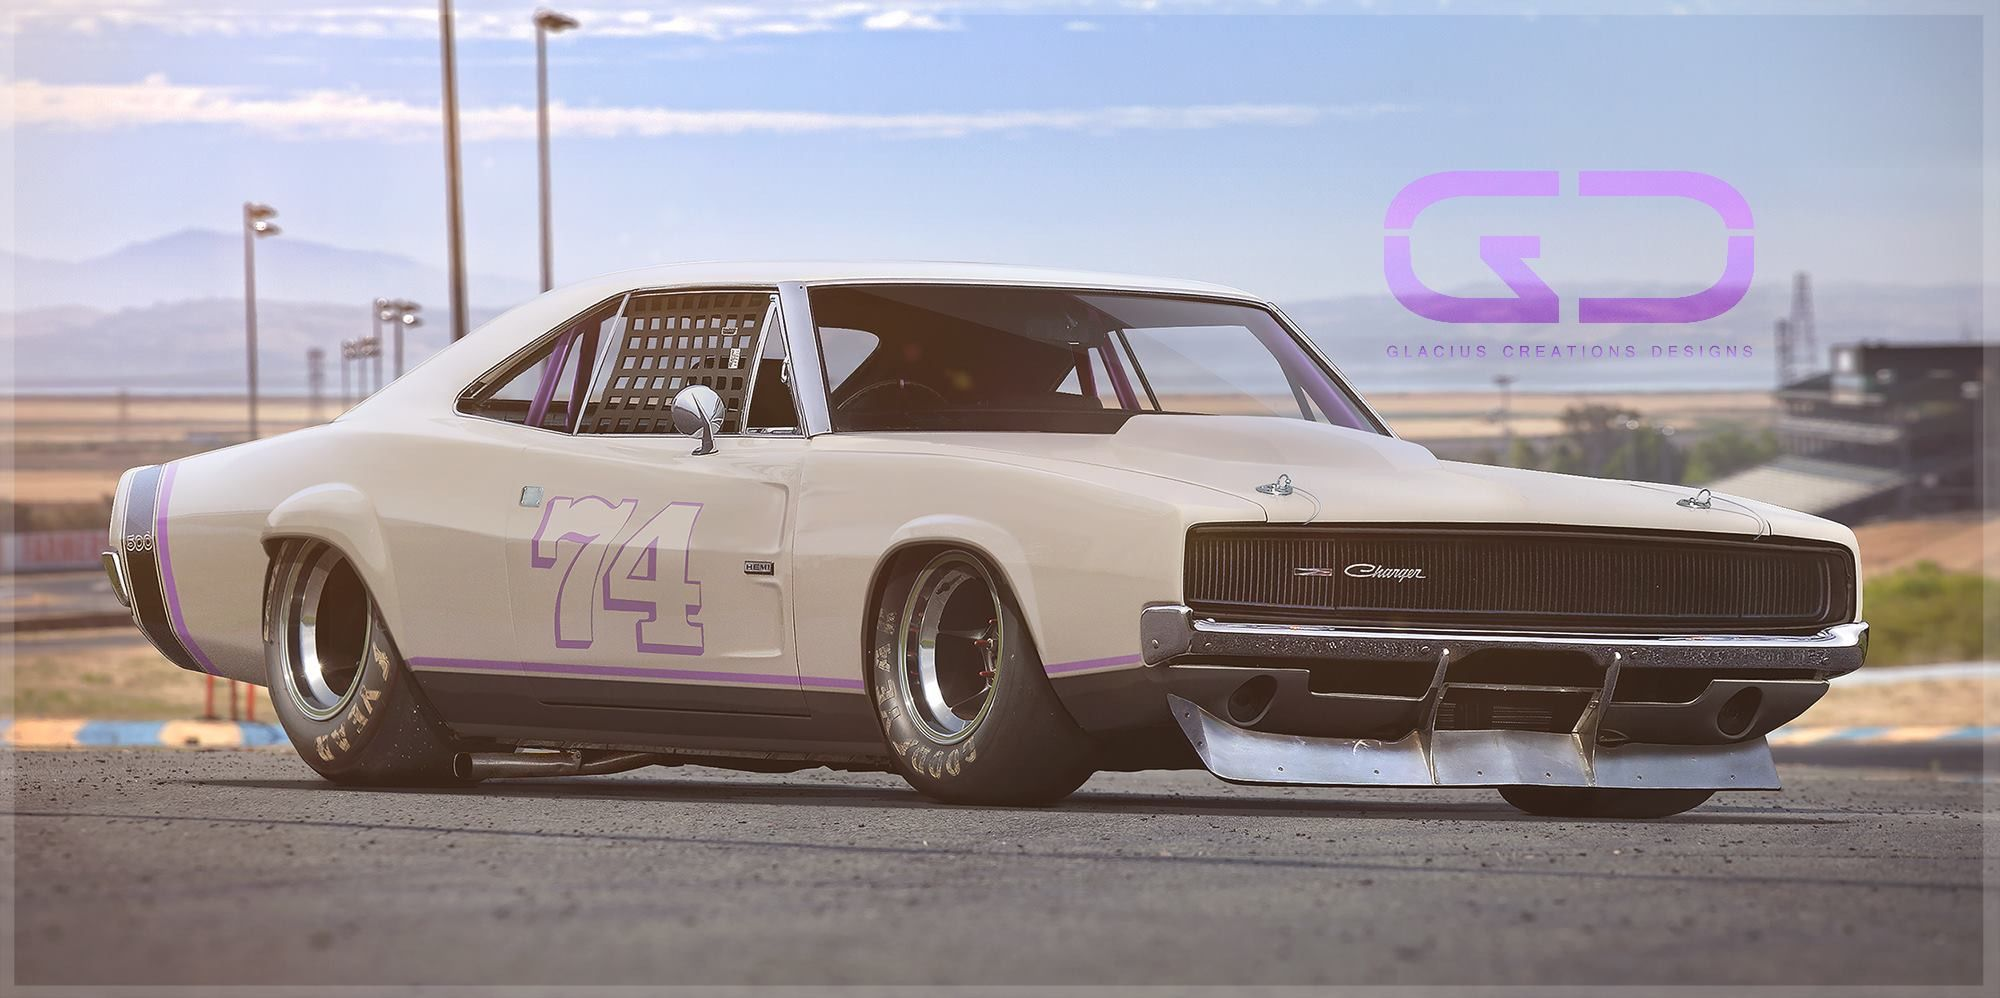 69 Dodge Charger Race Car Mopar Heaven Cars Dodge Charger Dodge